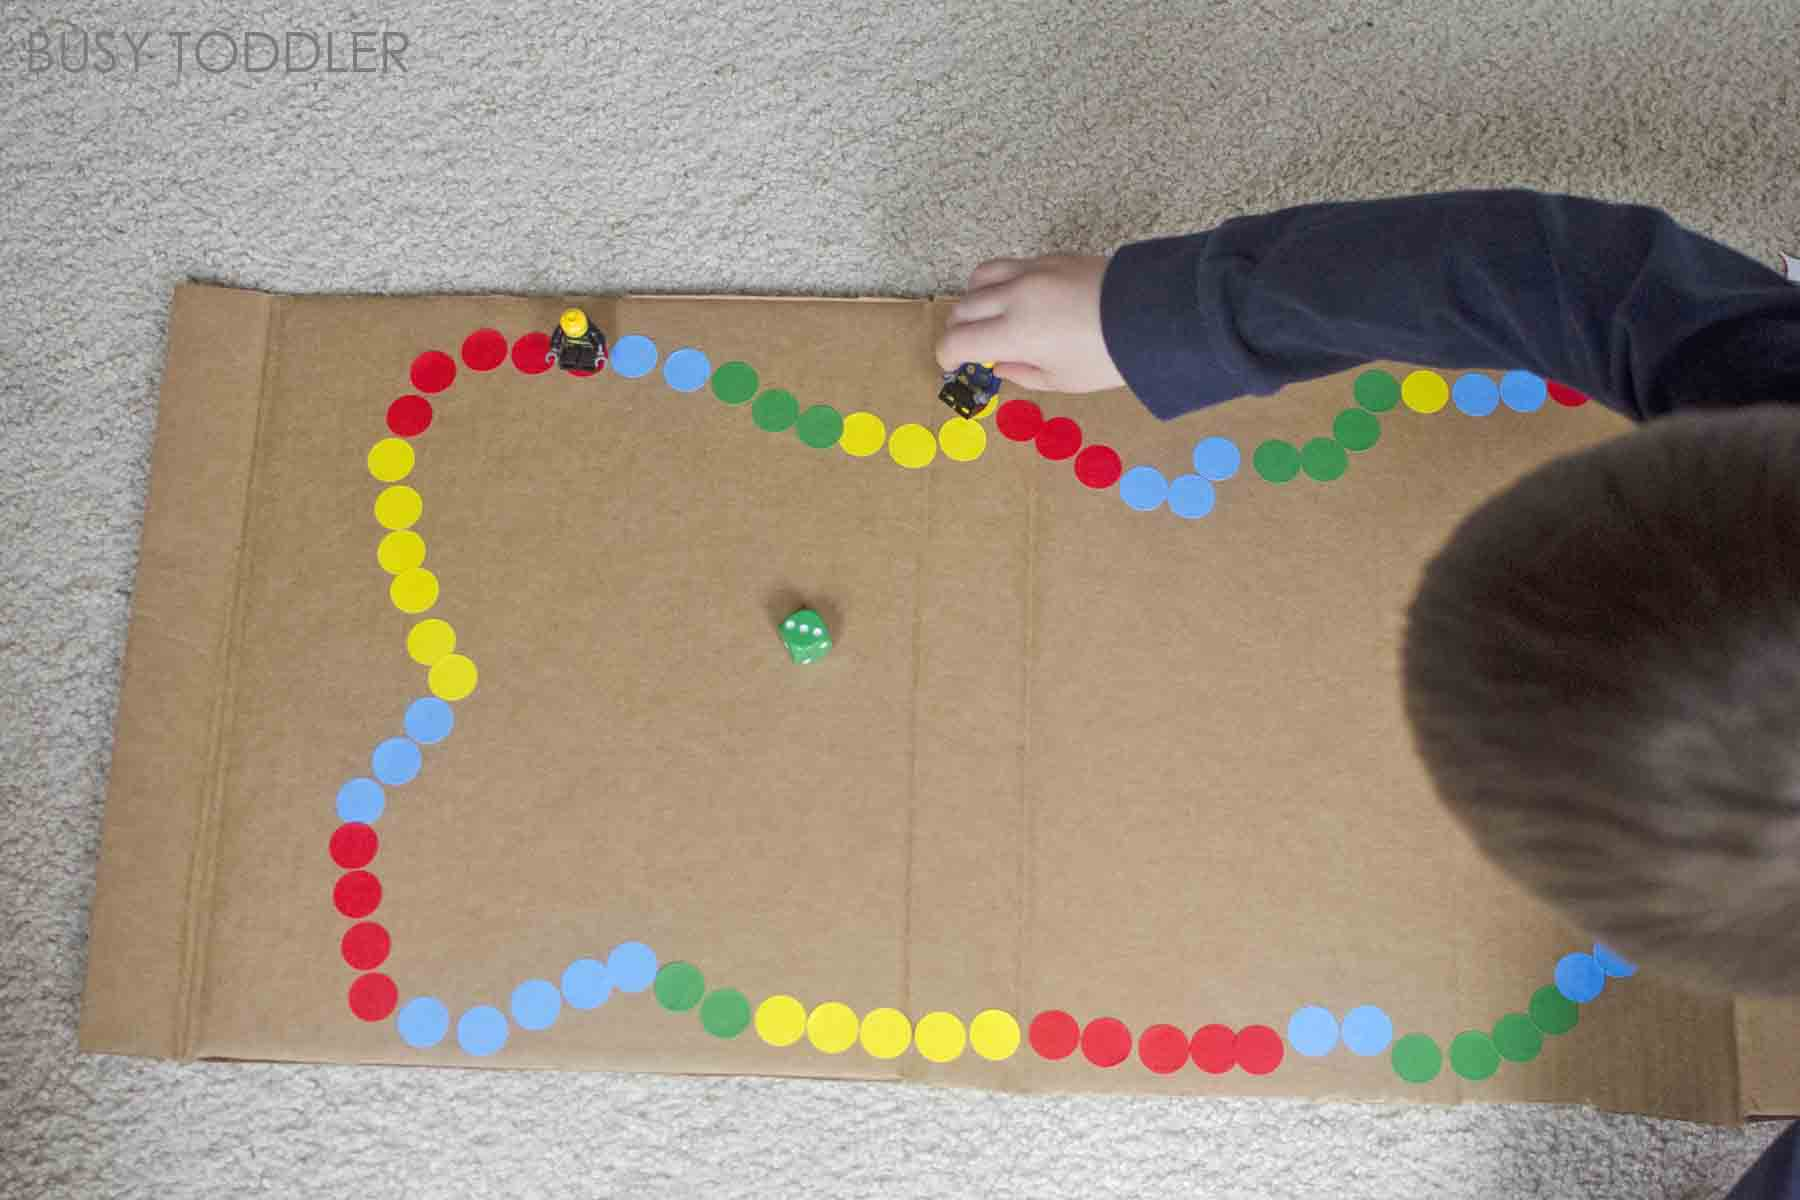 DIY BOARD GAME - make your own board game! An easy toddler and preschool activity! Preschoolers will love this fun math activity that's perfect for a rainy day. Toddler math activity, preschool math activity. Busy Toddler.